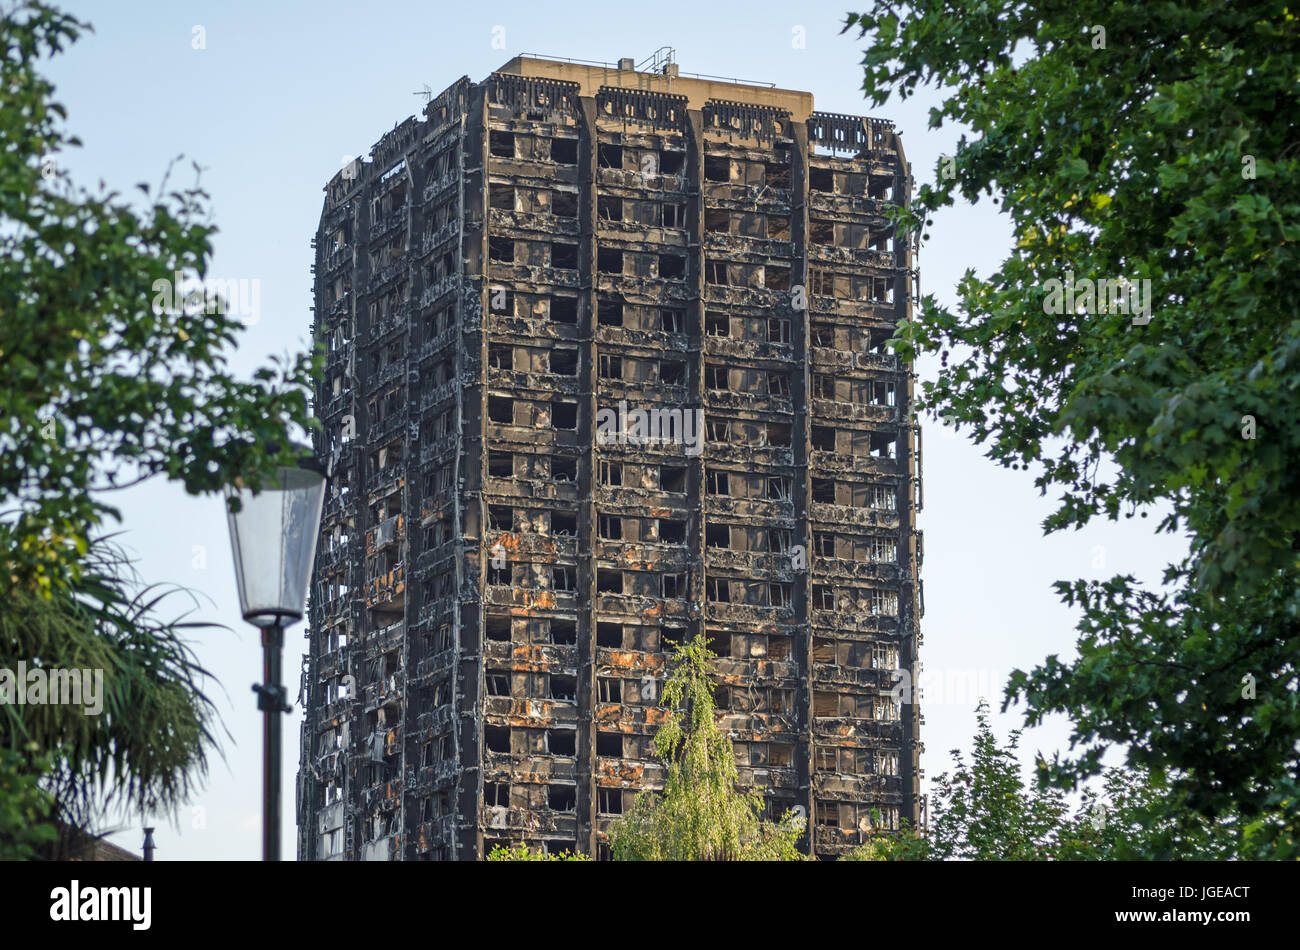 Charred remains of the Grenfell Tower block of council flats in which at least 80 people are feared to have died - Stock Image